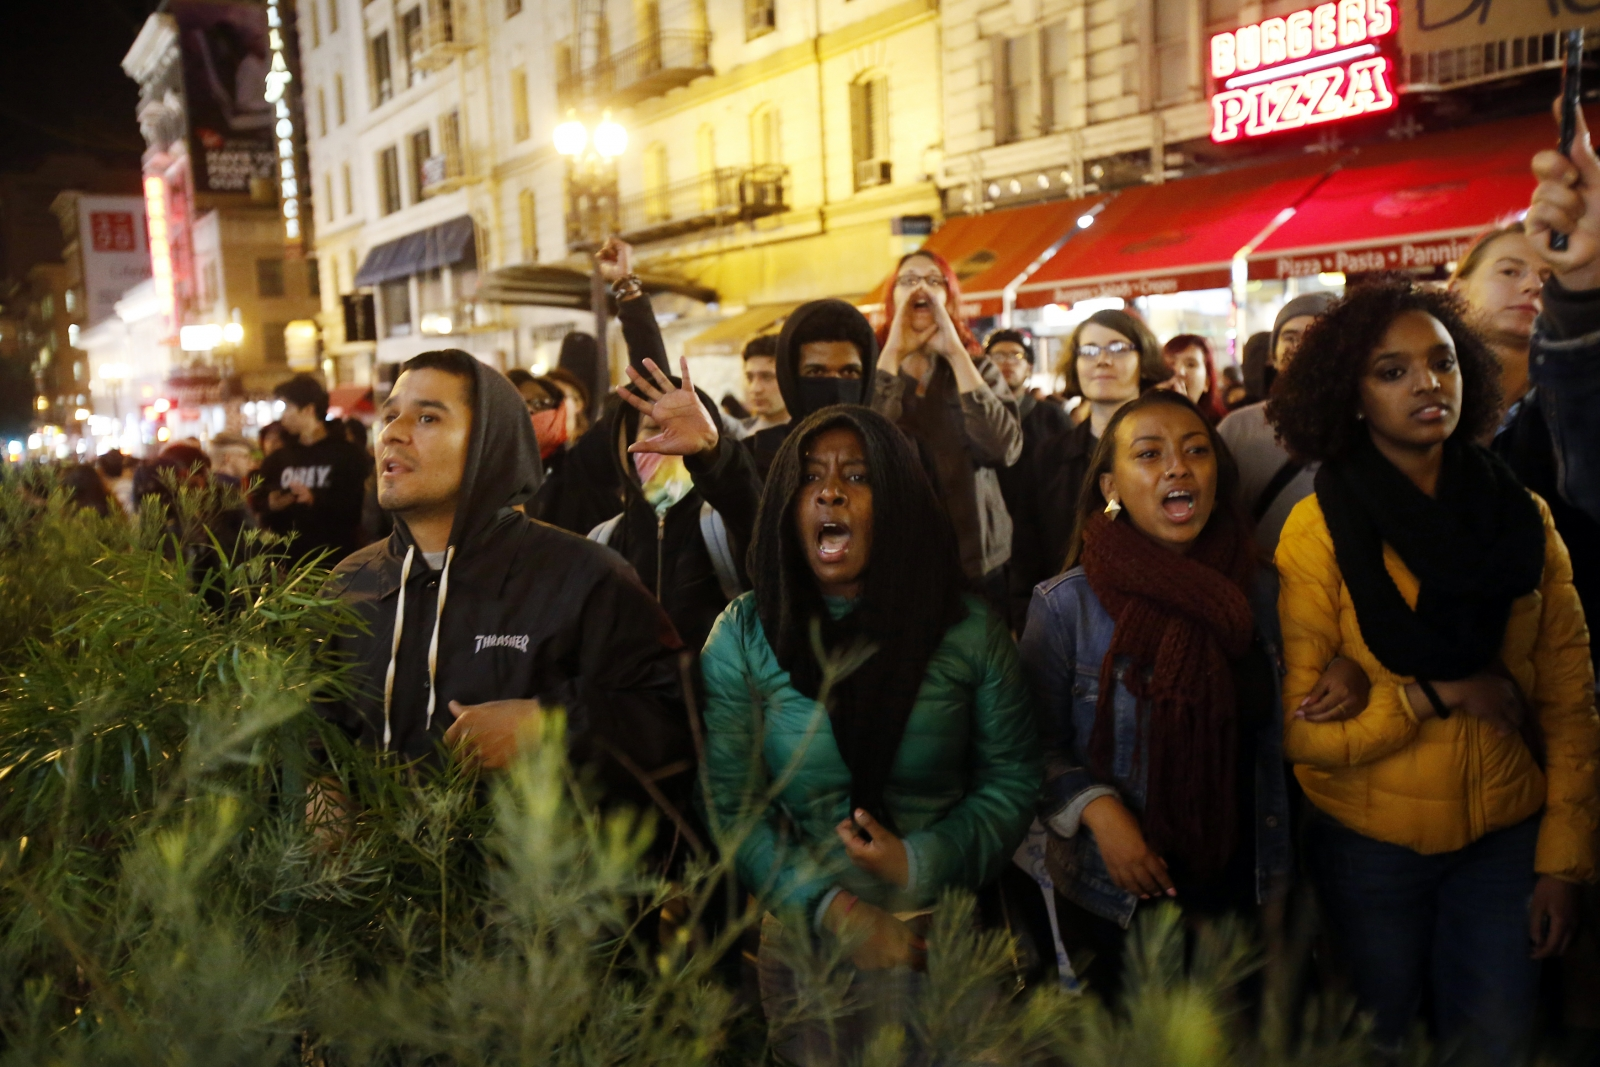 Demonstrators chant against the police during a demonstration against the grand jury decision in the Ferguson, Missouri shooting of Michael Brown